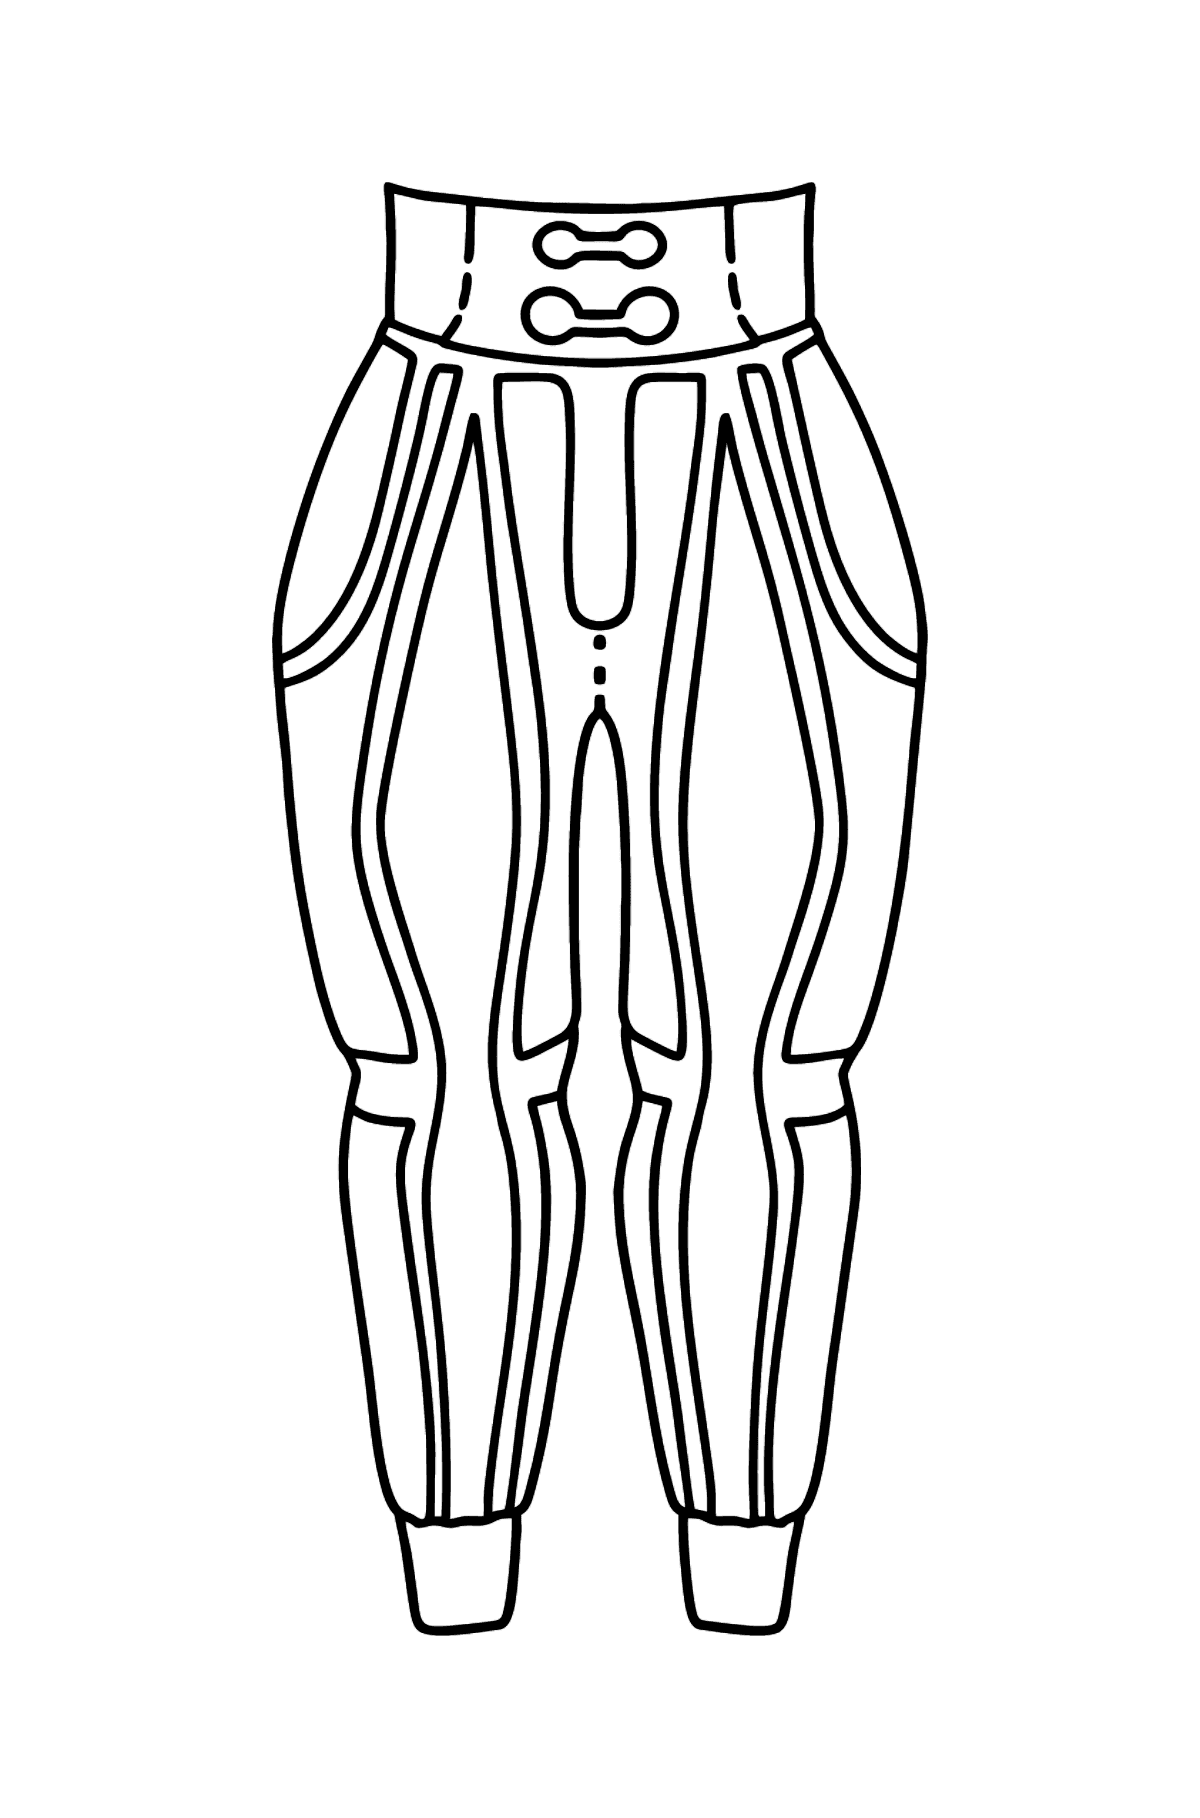 Pants coloring page - Coloring Pages for Kids